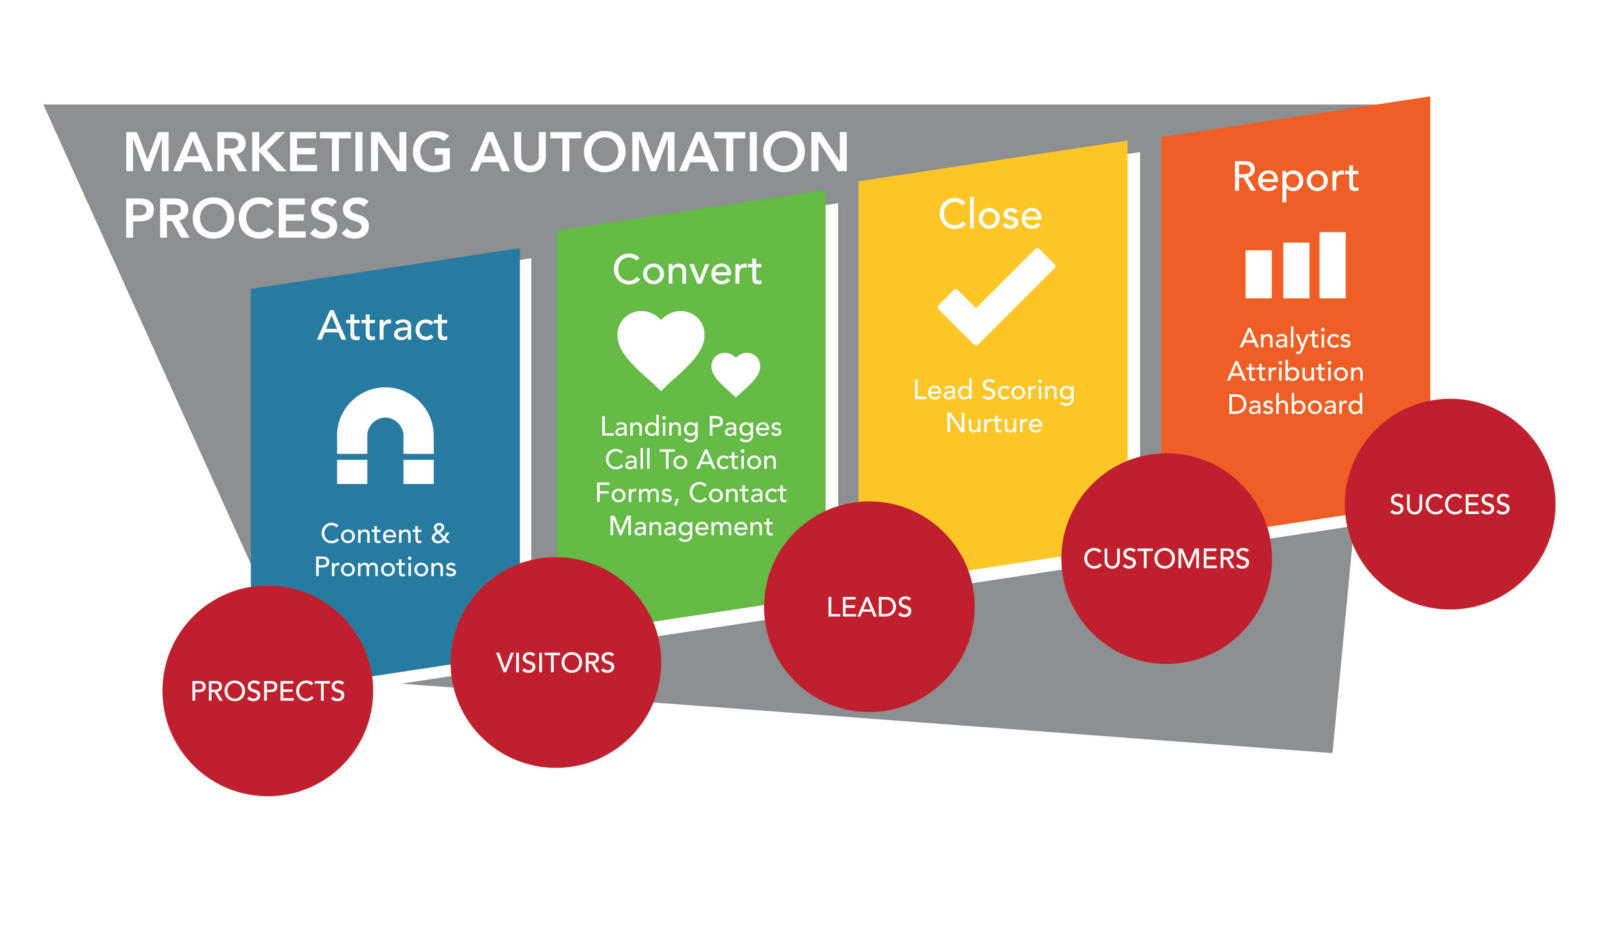 Marketing Automation Process Graphic 01 1024x597 6 jpg 6